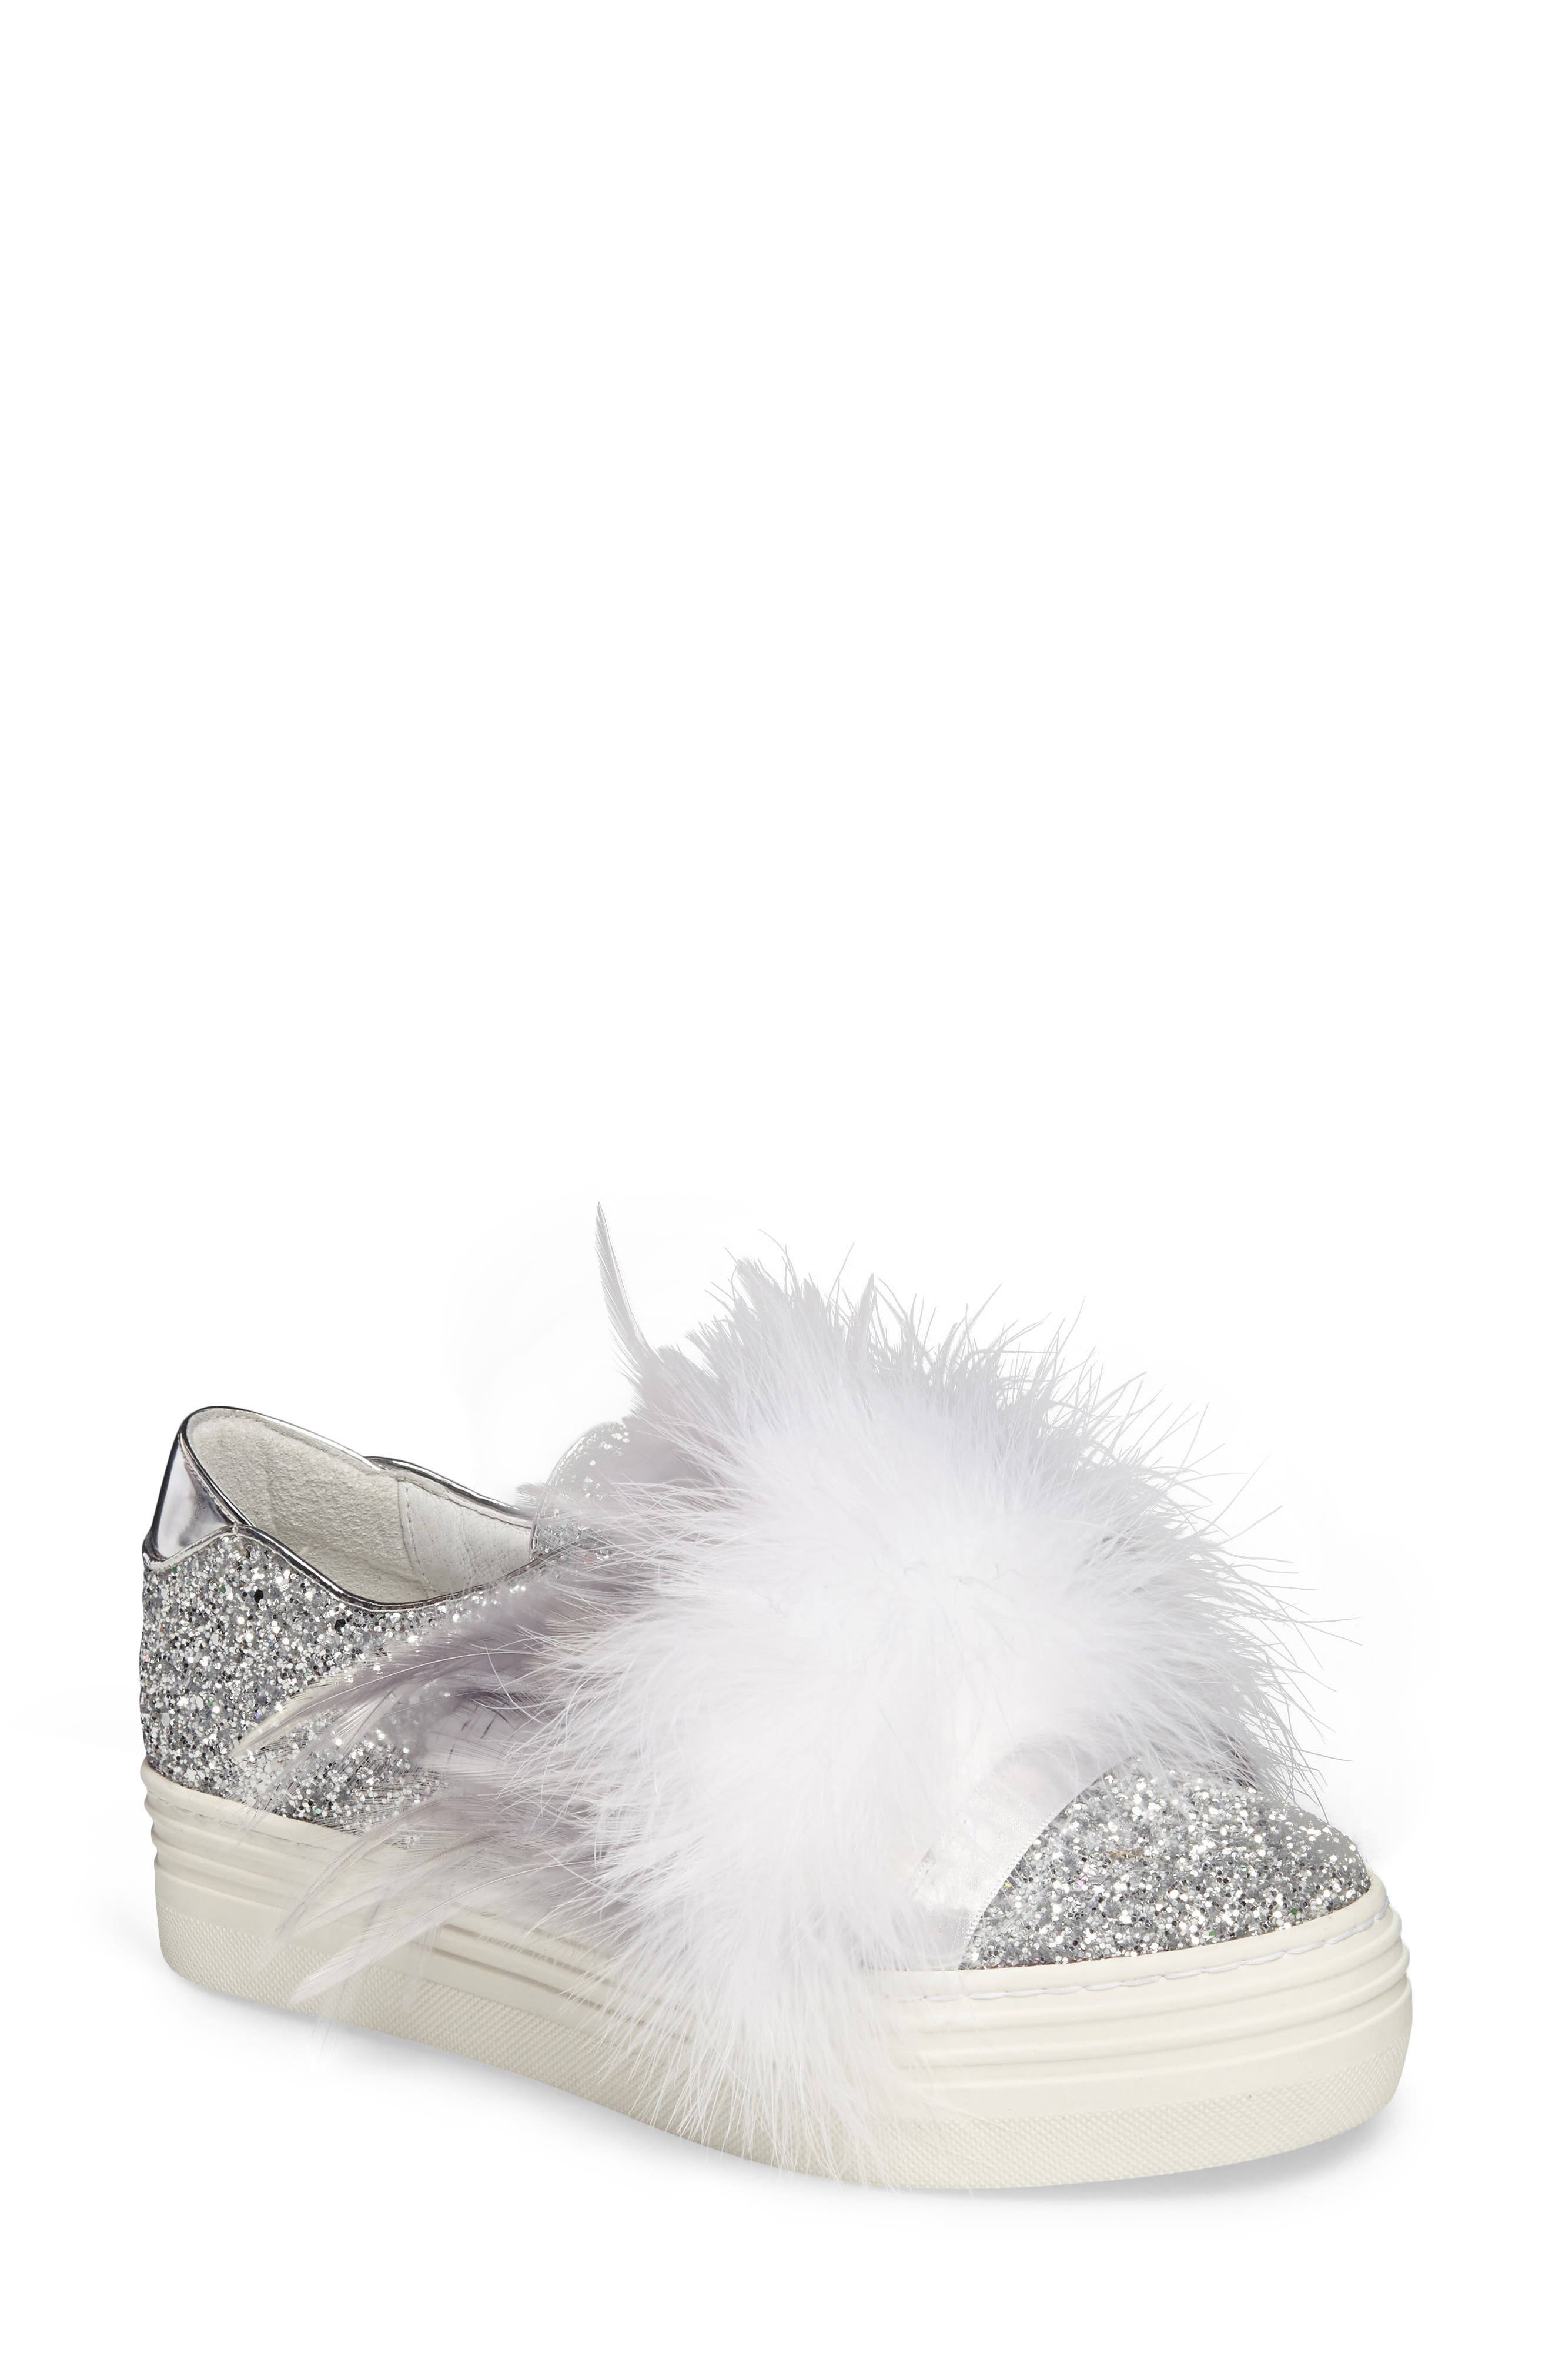 Kate Feathered Slip-On Sneaker,                             Main thumbnail 1, color,                             020